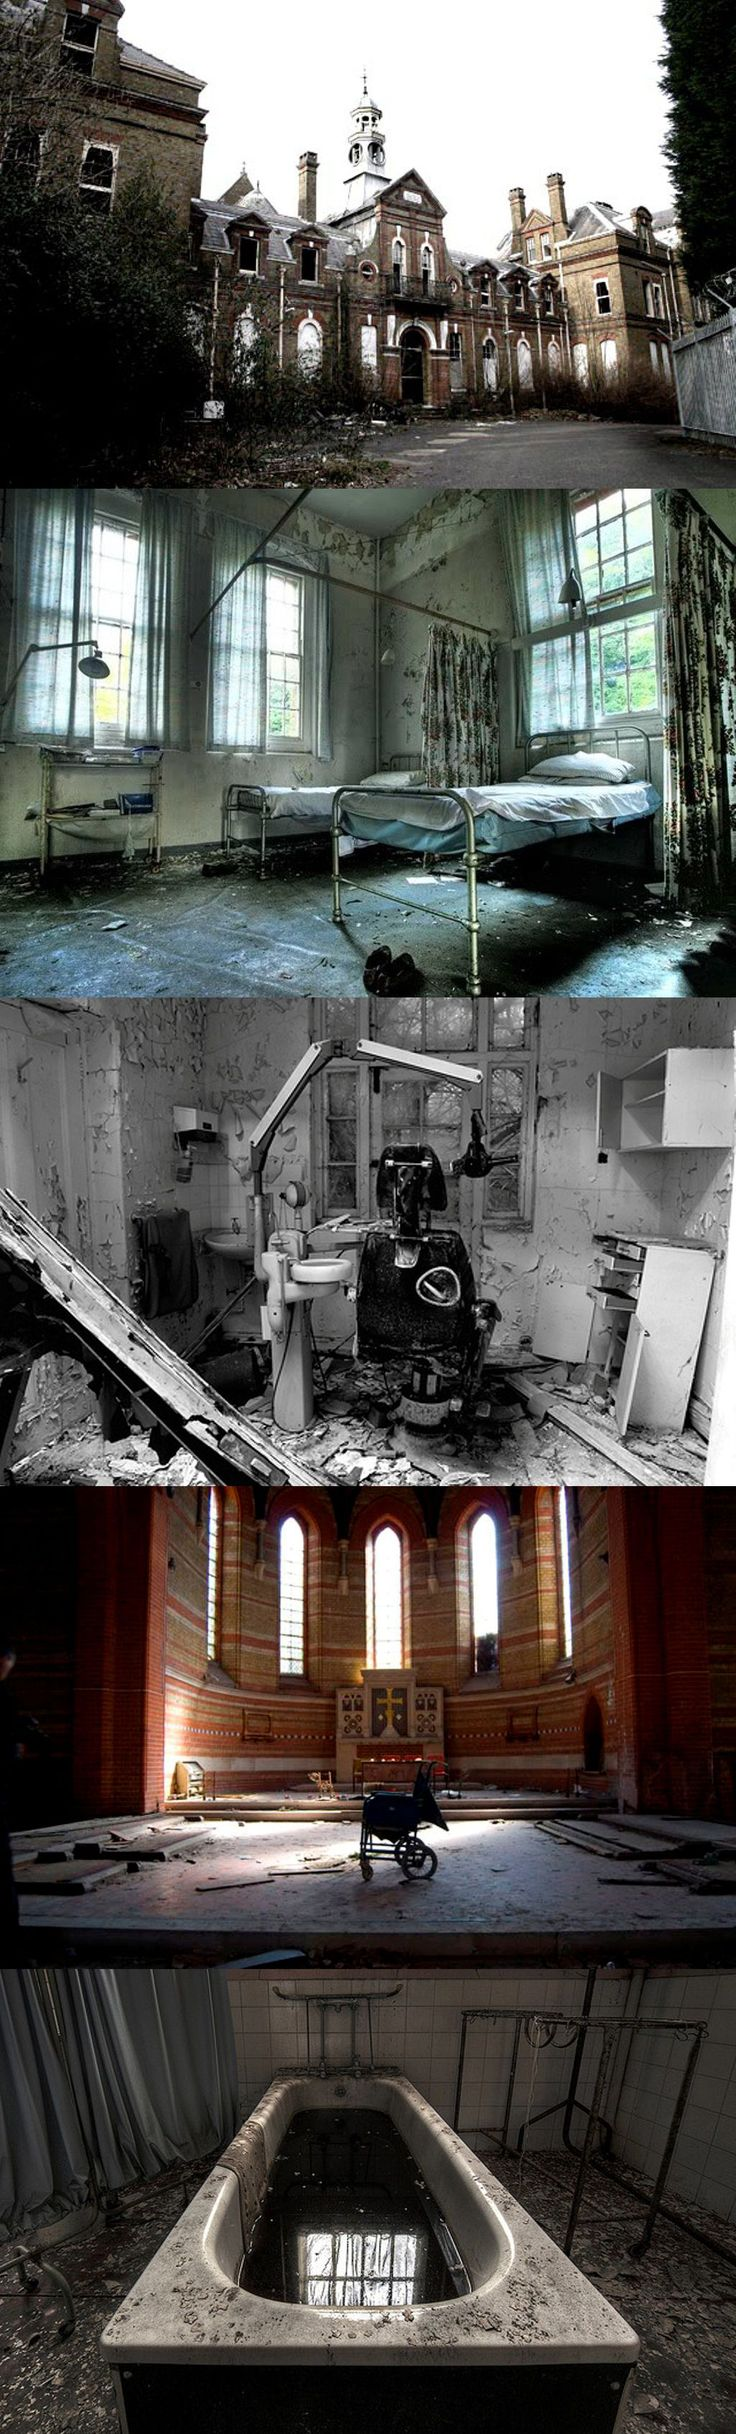 Cane Hill was an insane asylum in Croydon London in use until 1991